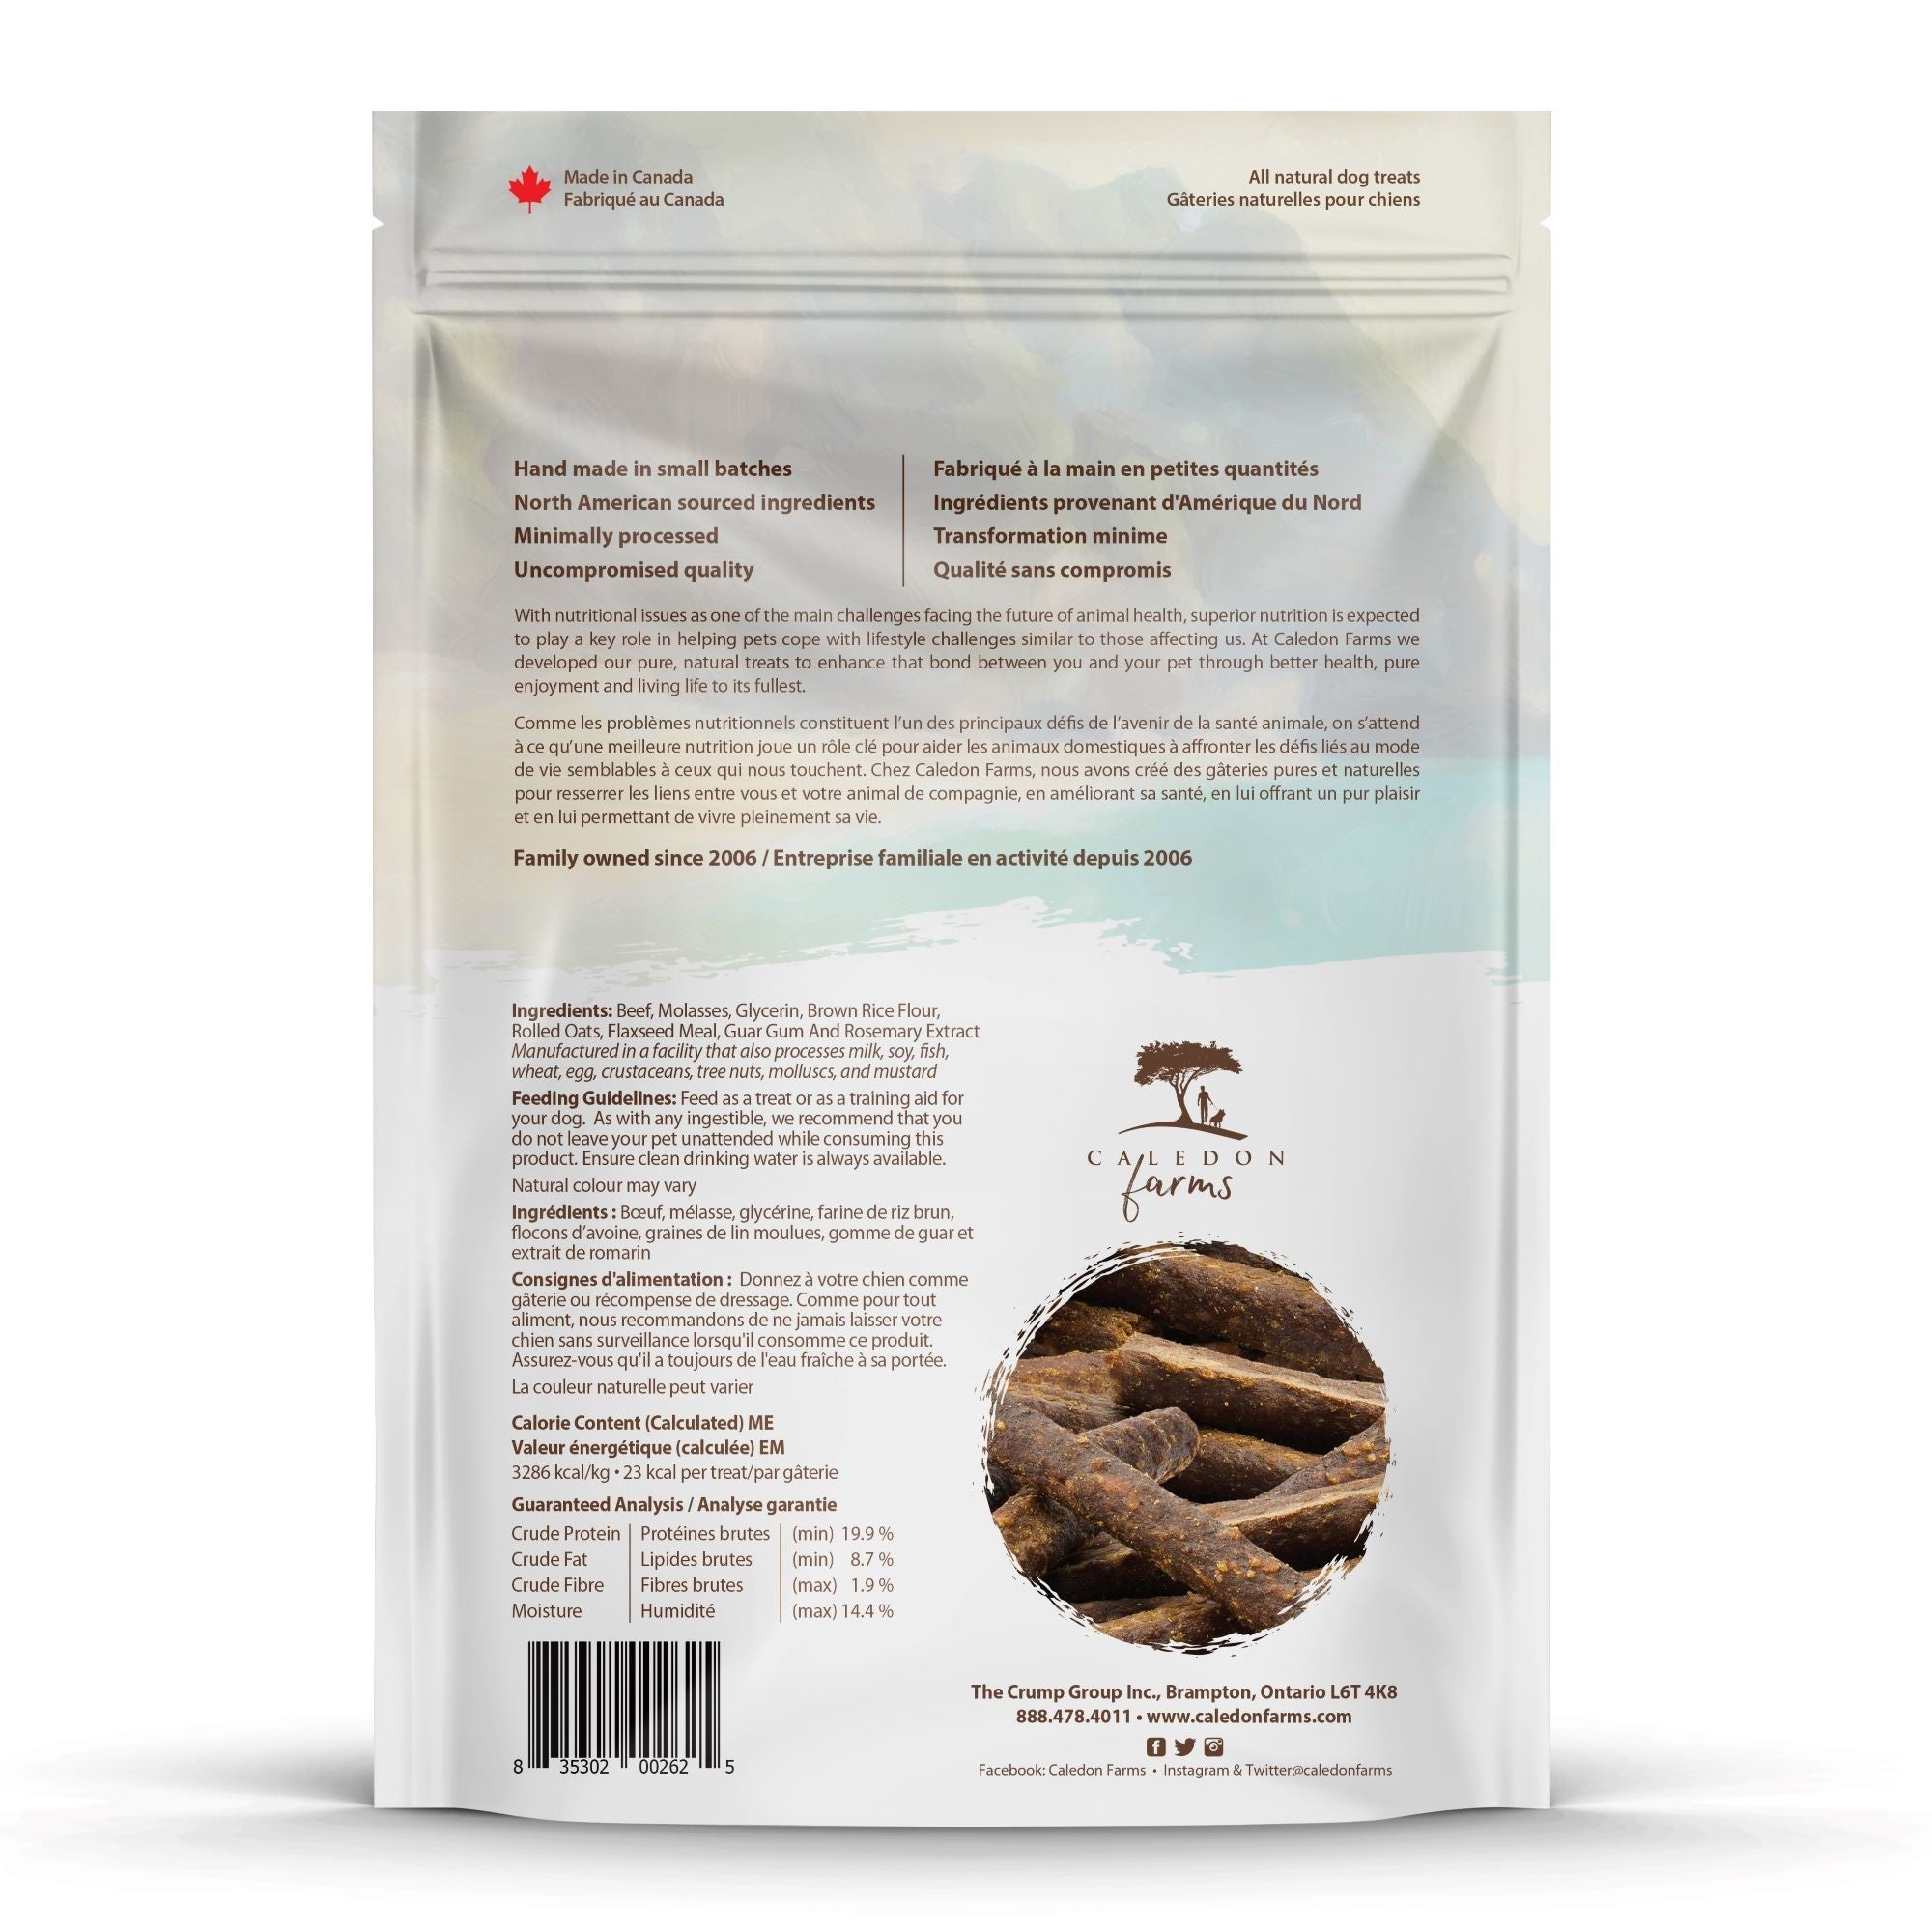 Chewy Beef Sticks Dog Treats Bag Back